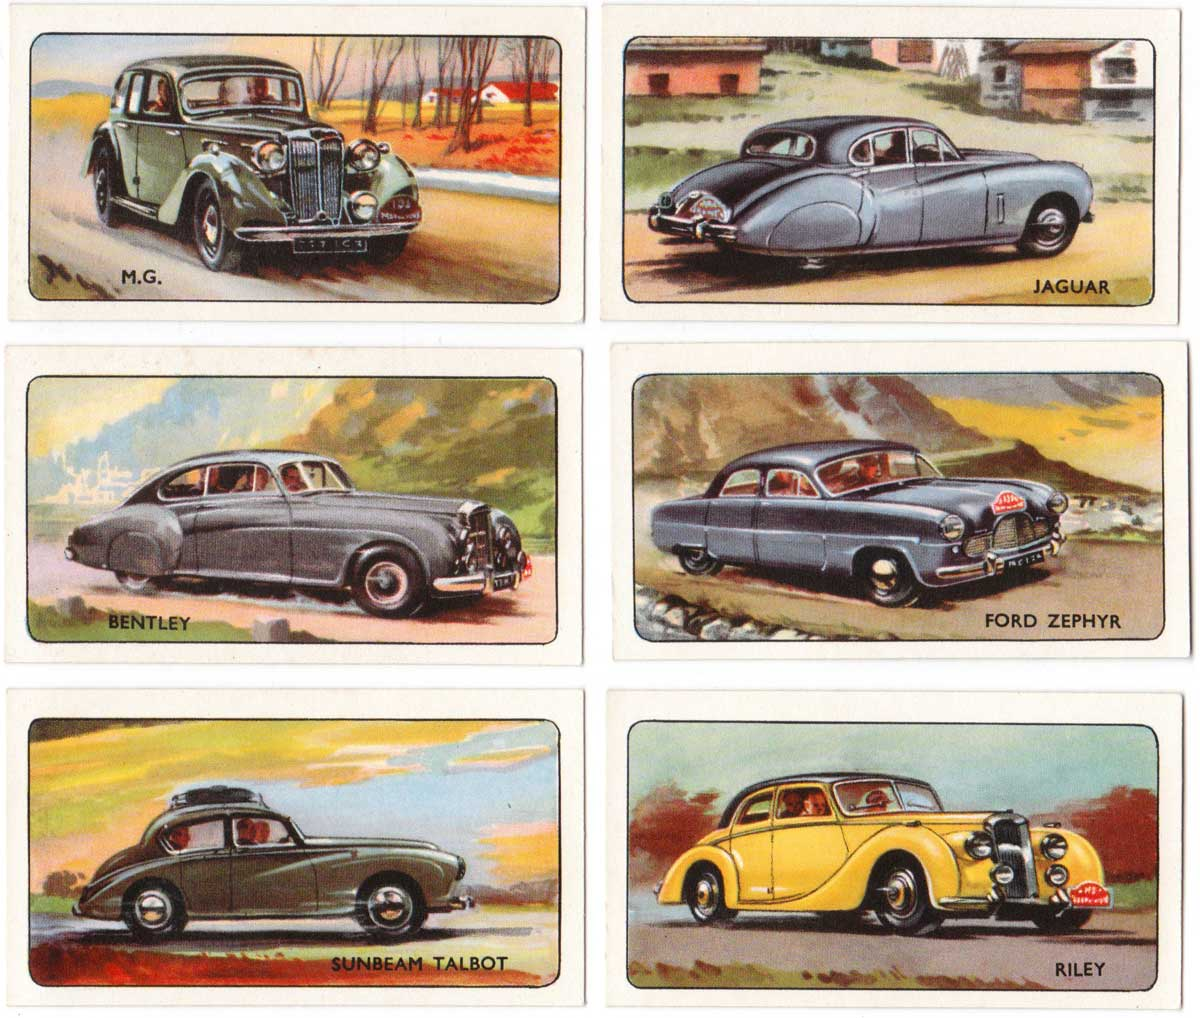 Rally card game car cards by Pepys, 1955